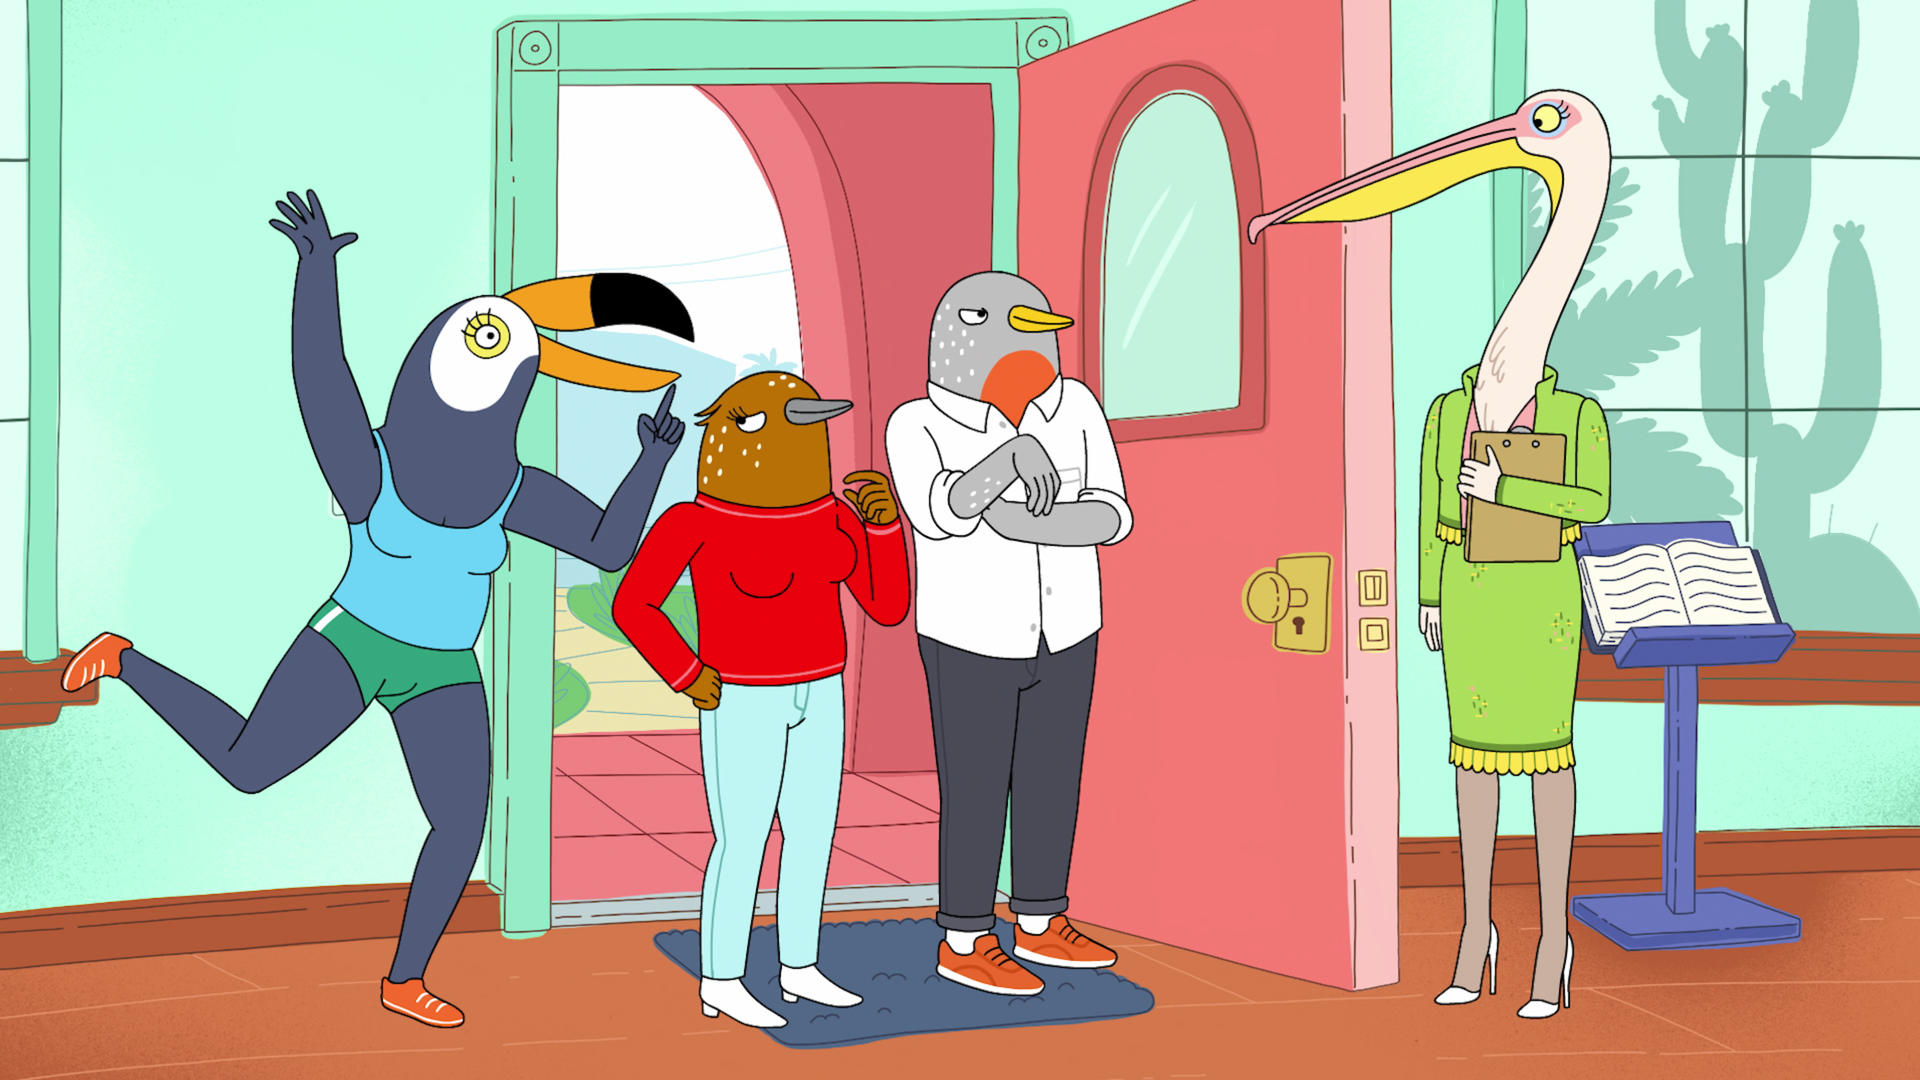 Tiffany Haddish and Ali Wong's feminist Netflix cartoon about birds will remind you of yourself and your BFF